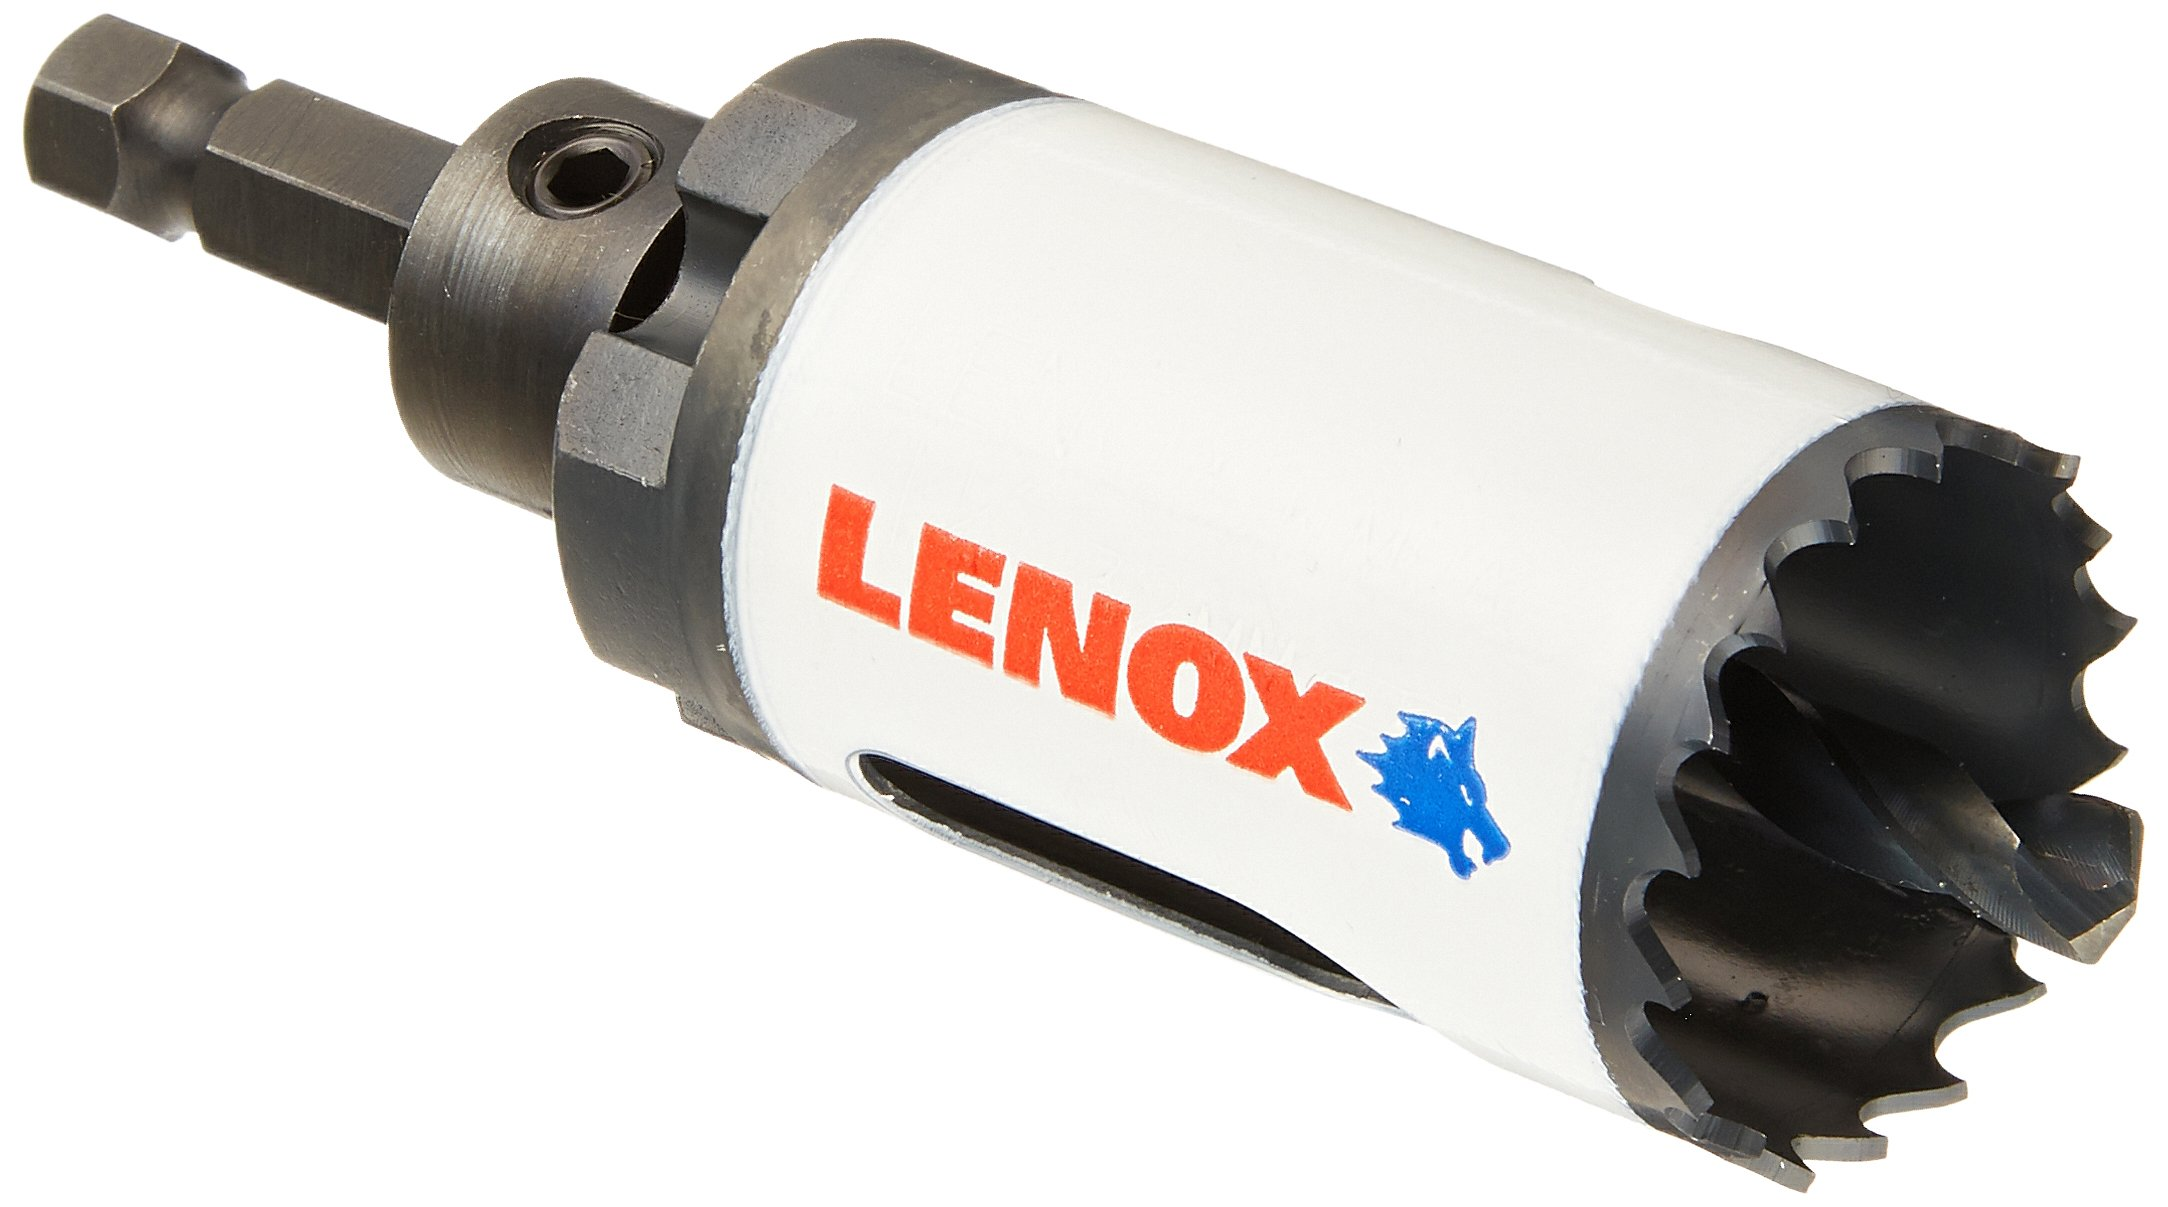 LENOX Tools Bi-Metal Speed Slot Arbored Hole Saw with T3 Technology, 1-1/4